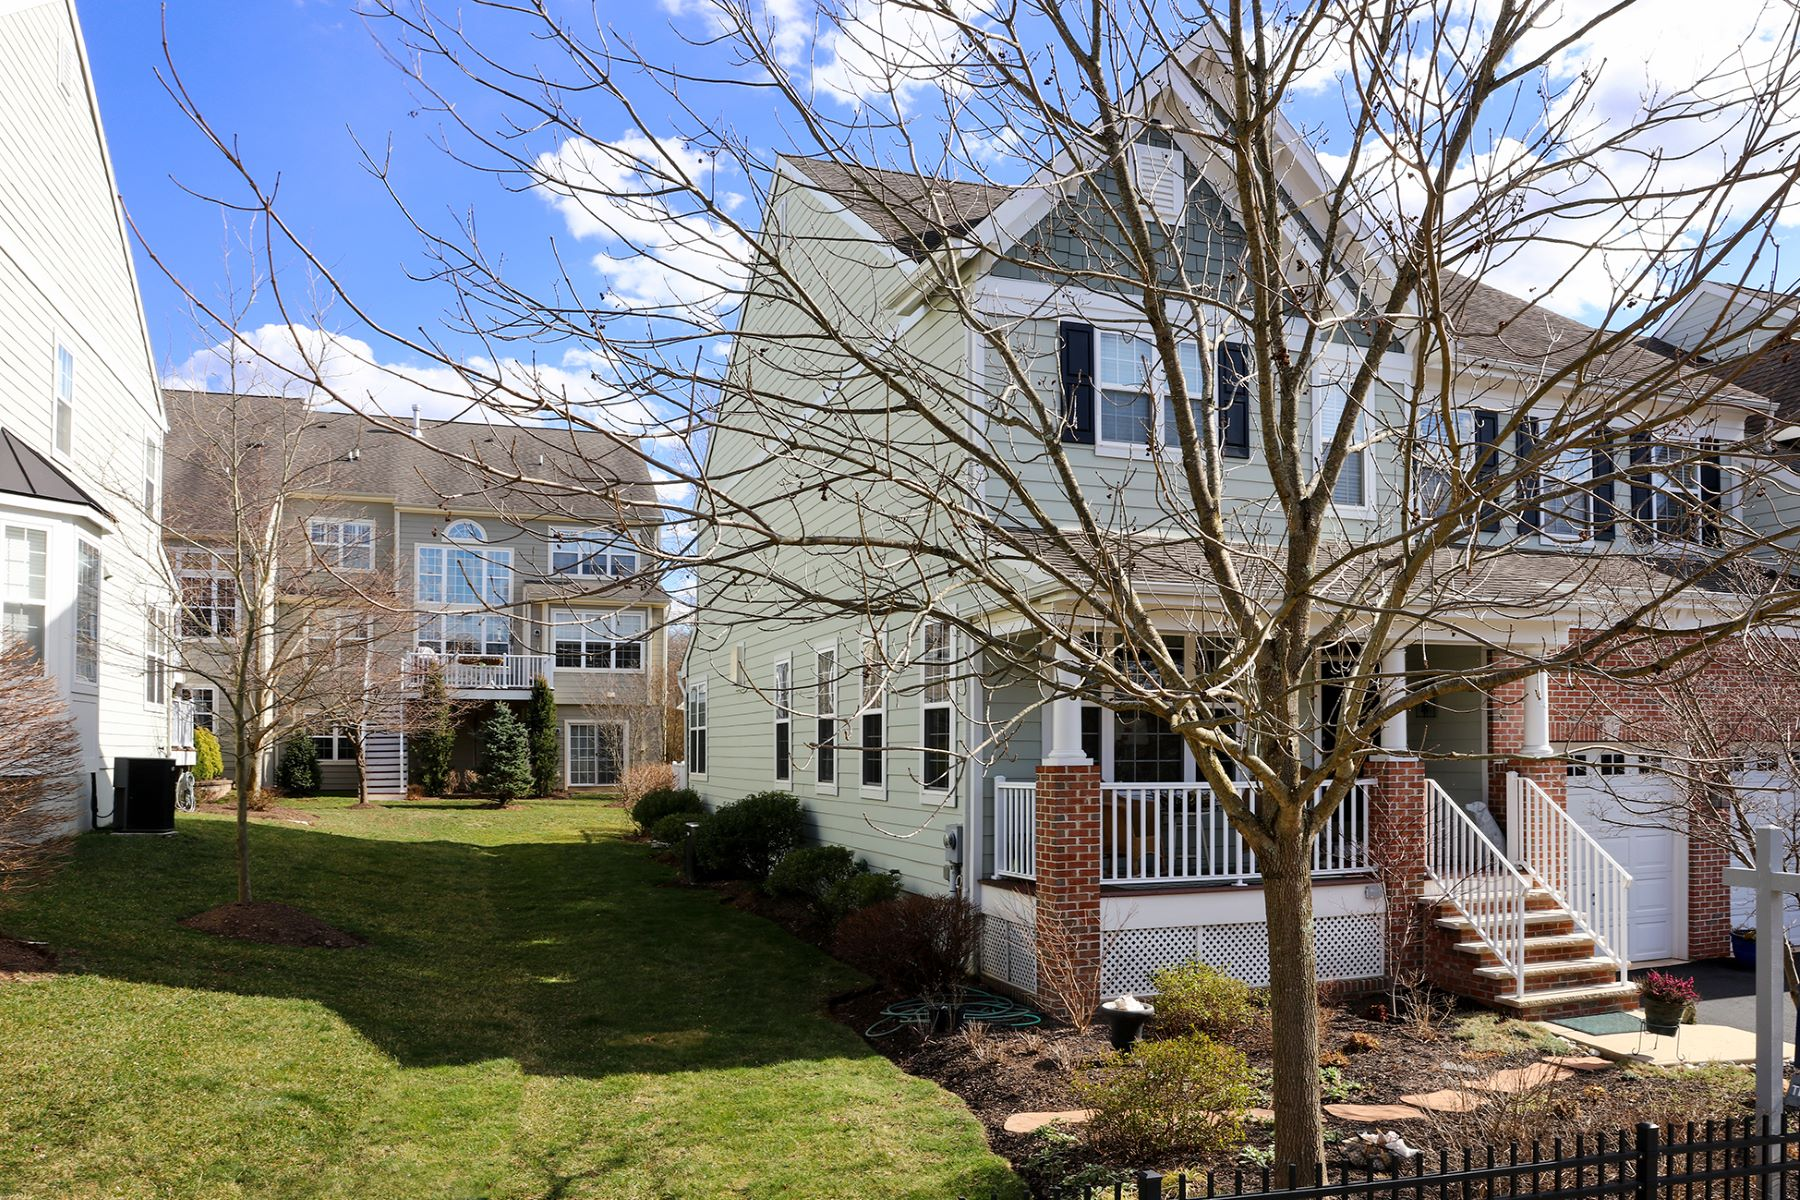 Townhouse for Sale at Easy To Enjoy 513 Titus Road Lambertville, New Jersey 08530 United States